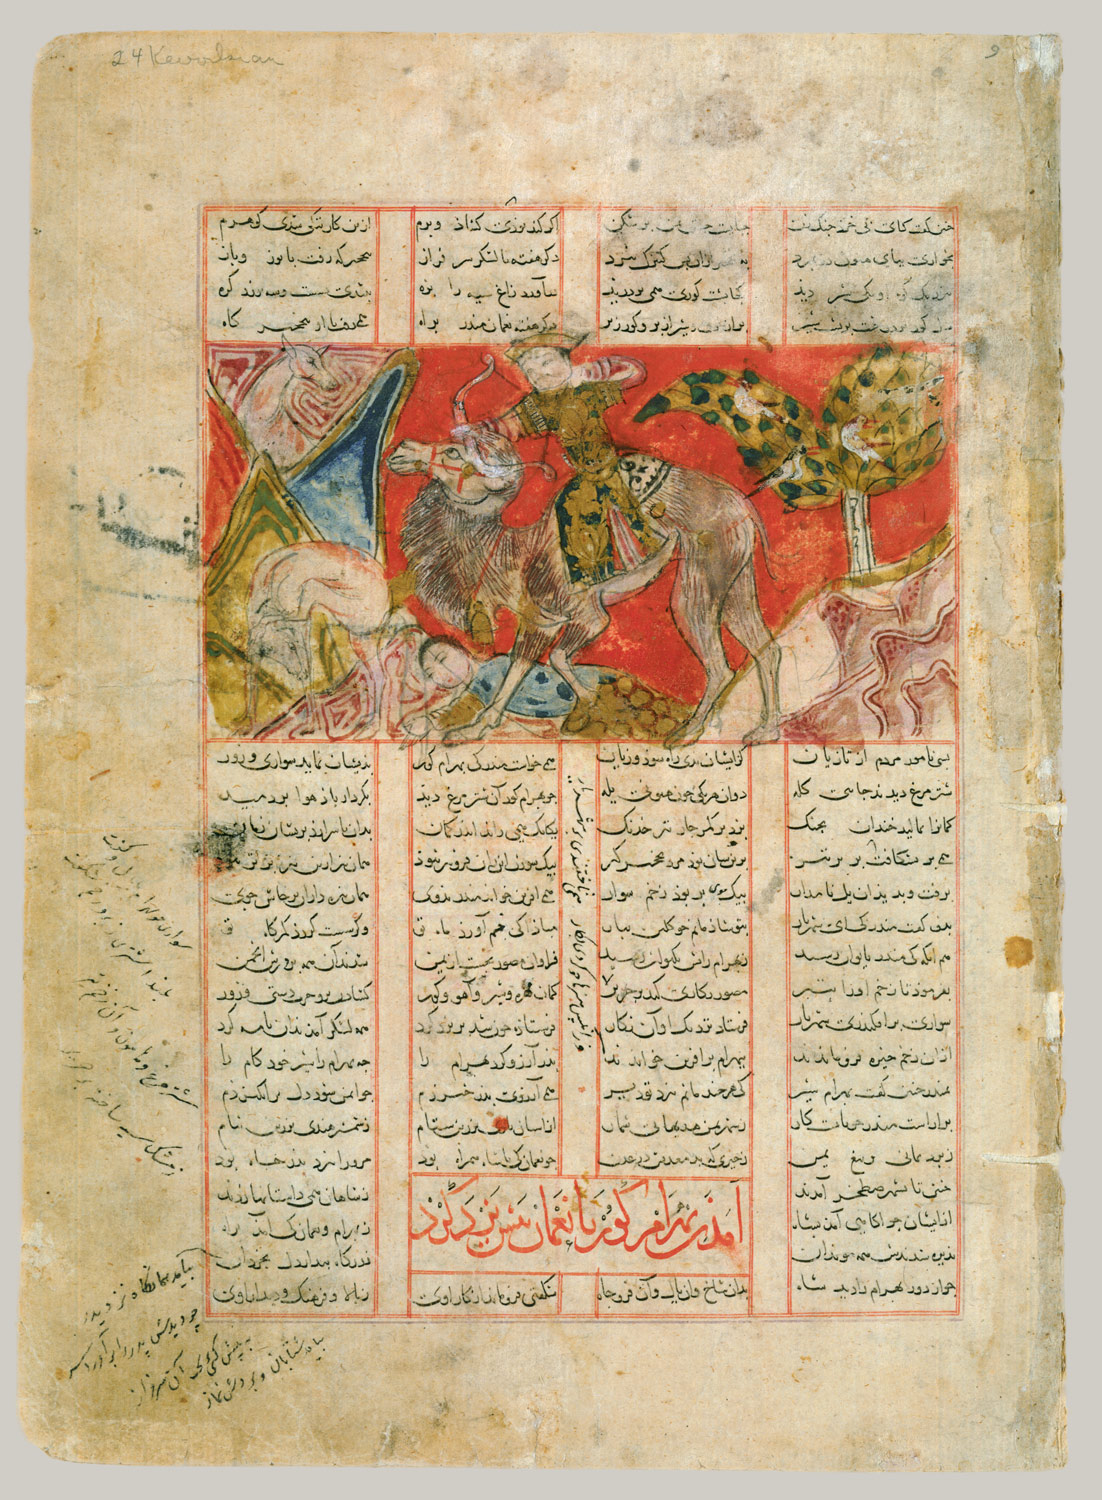 Bahram Gur Hunting with Azada: From the Shahnama (Book of Kings)